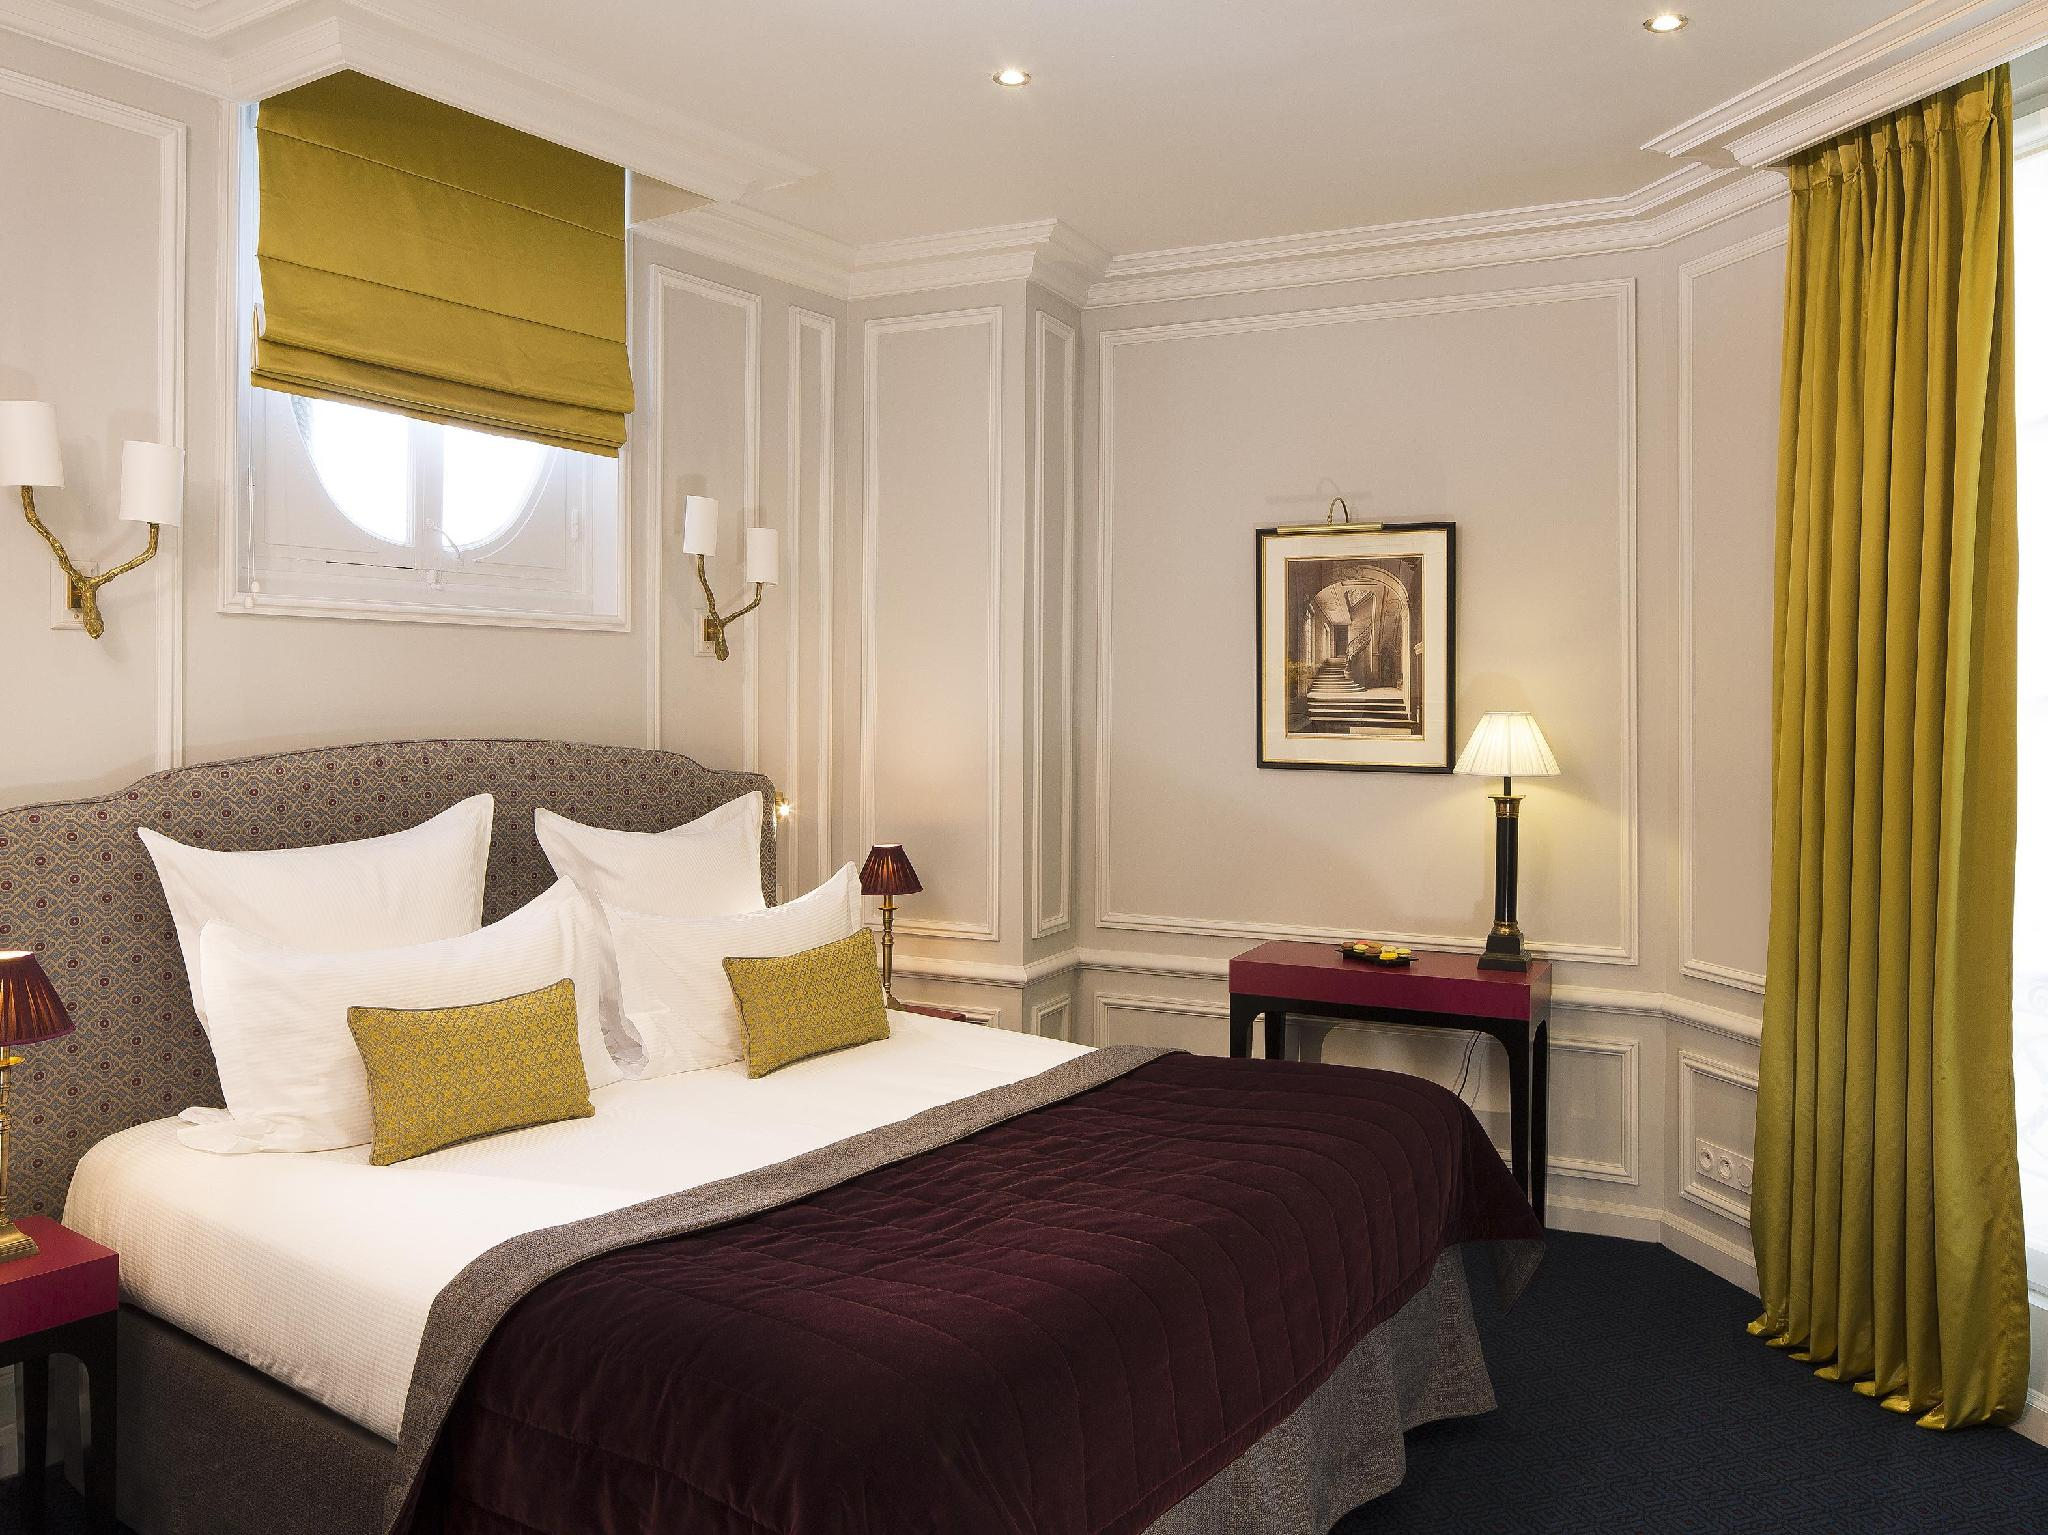 Best Price on Hotel Bourgogne & Montana by MH in Paris Reviews